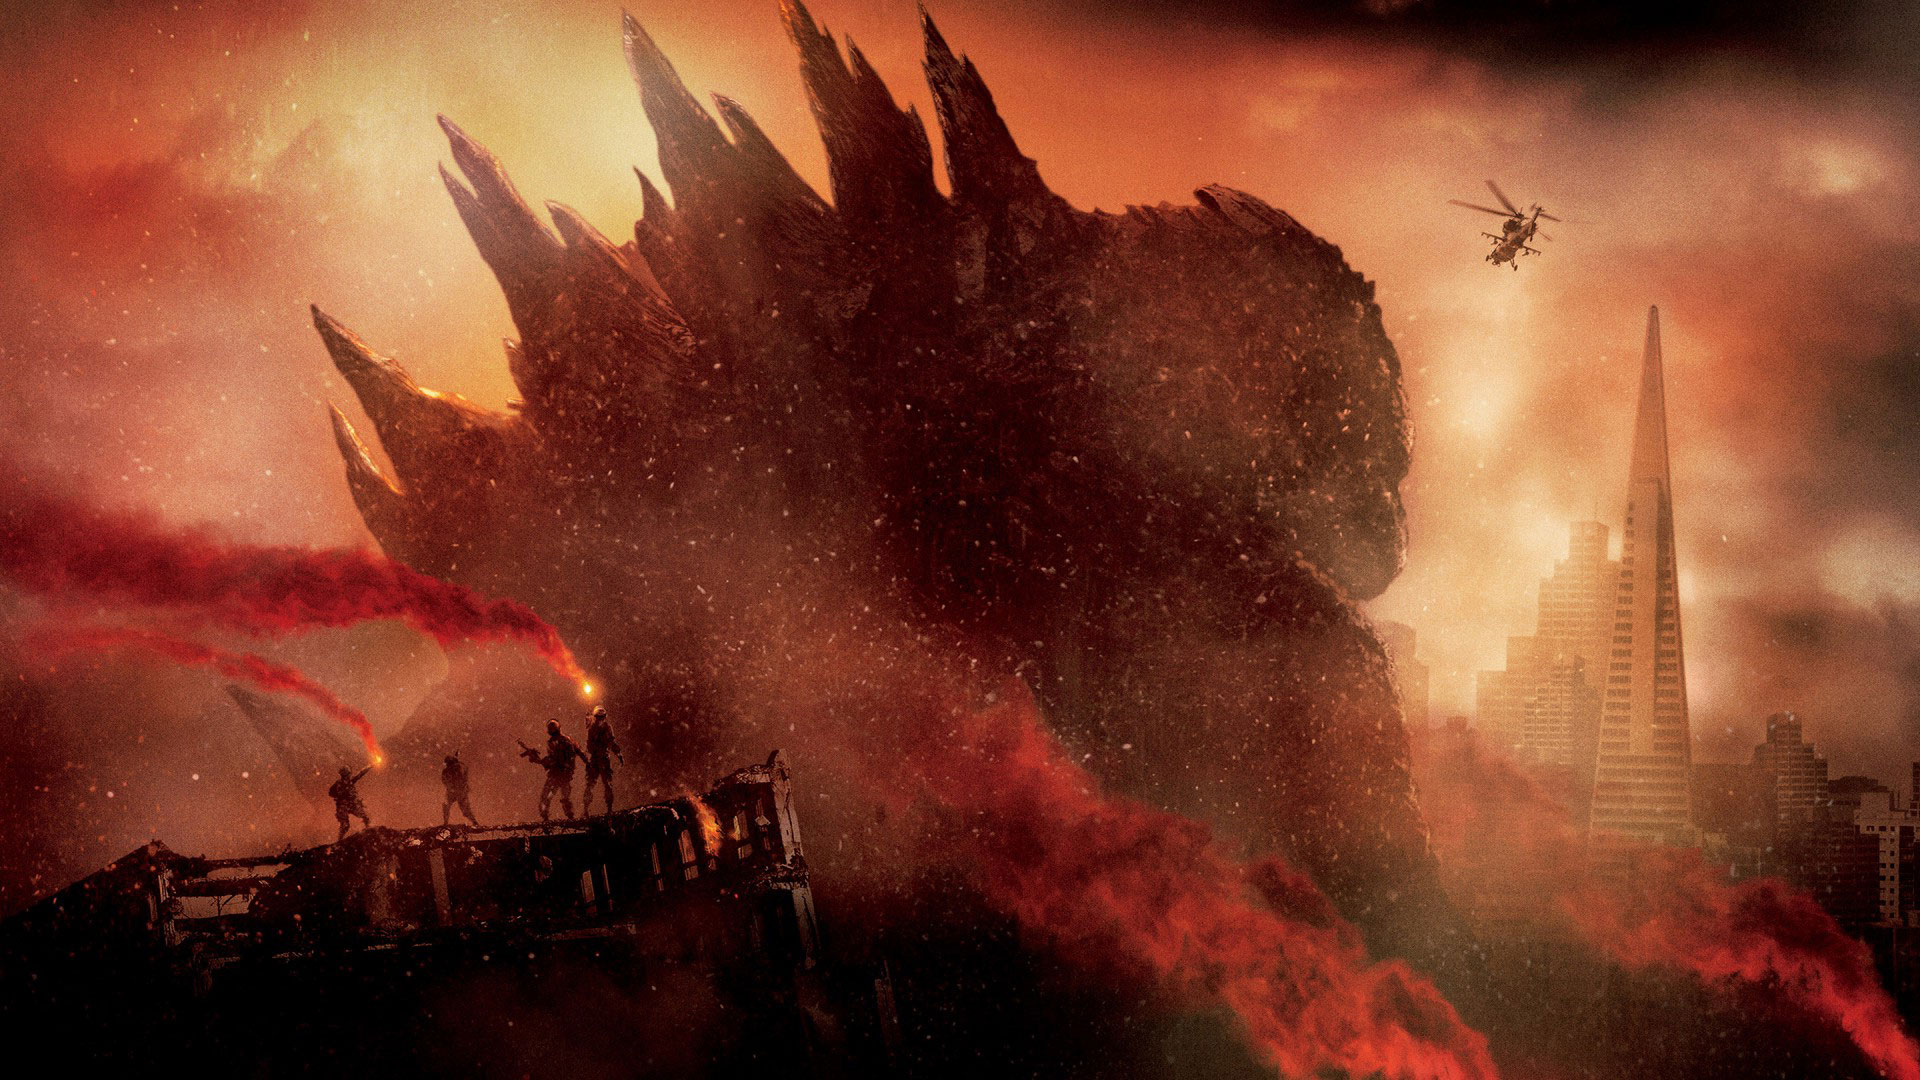 Godzilla 2014 Wallpapers hd